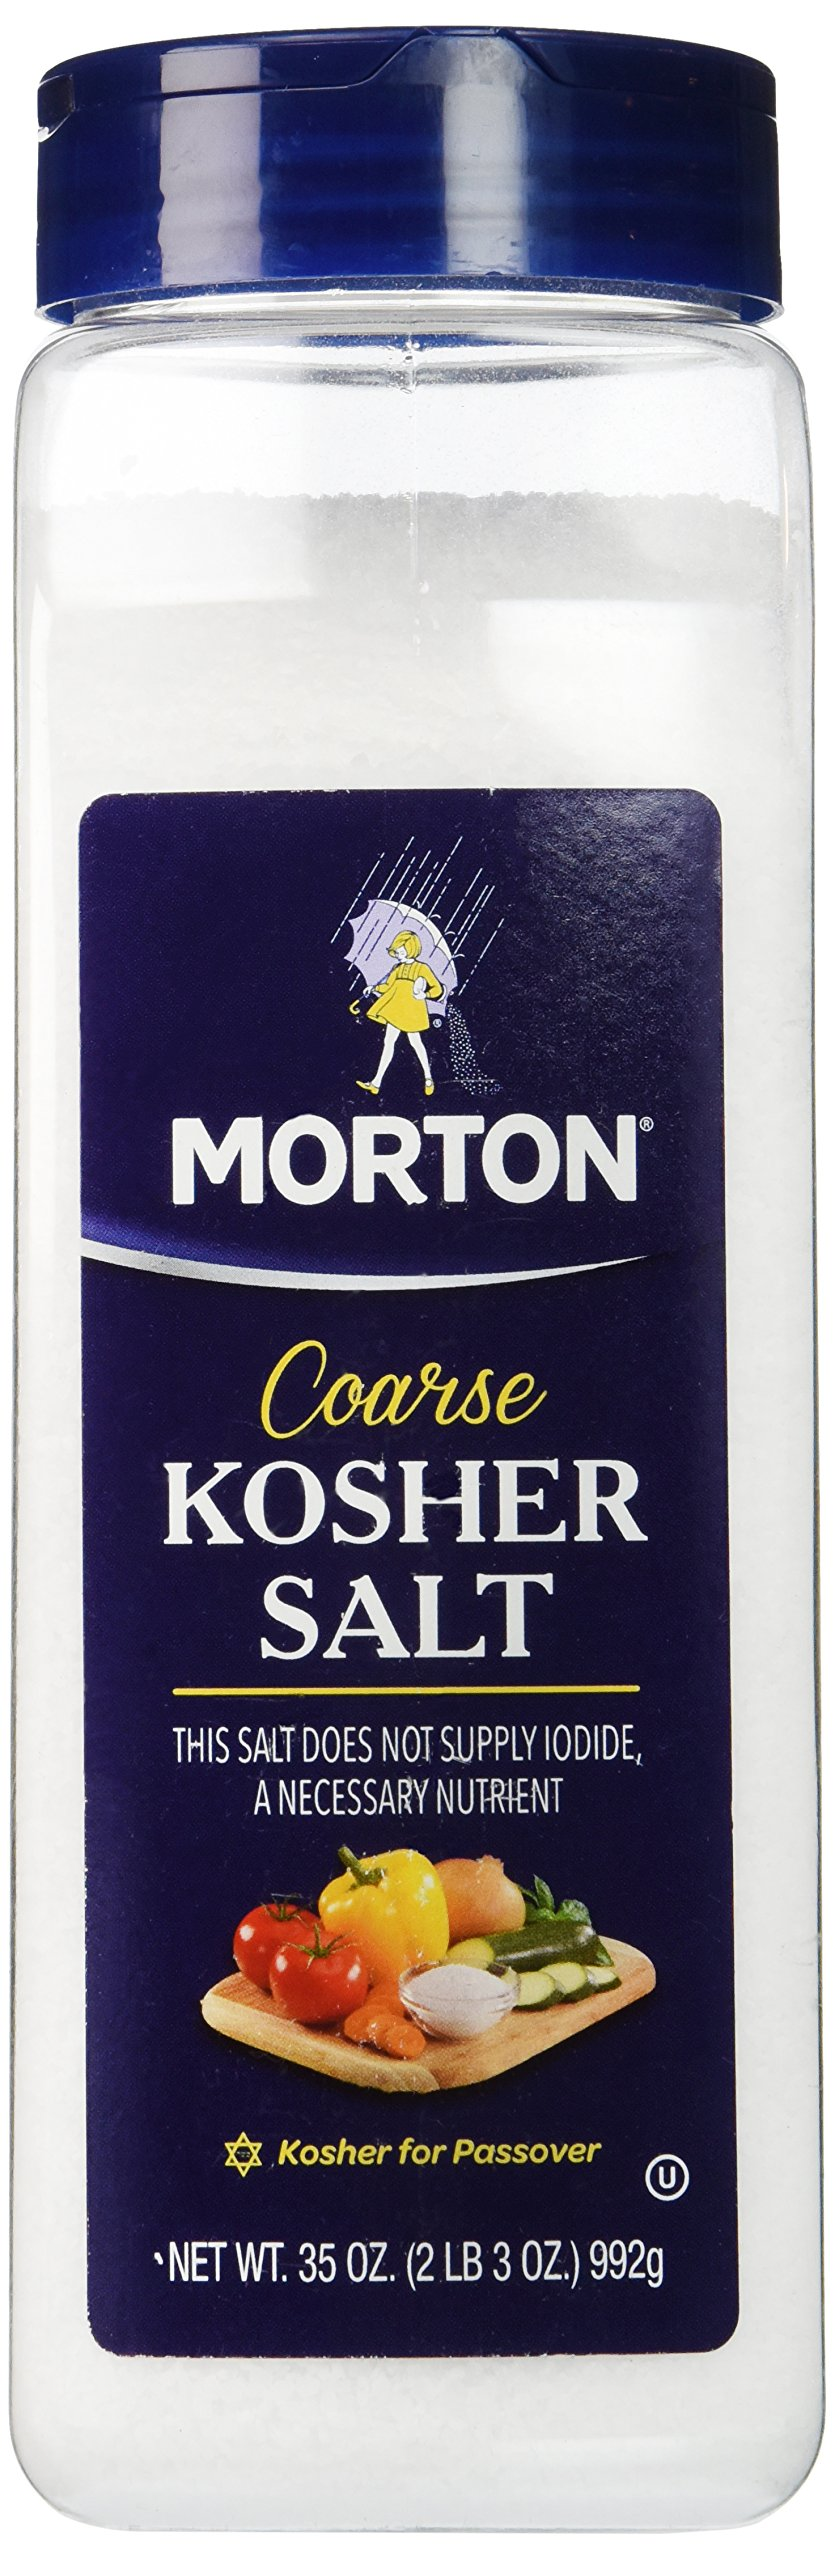 Morton Coarse Kosher Salt 35 oz.